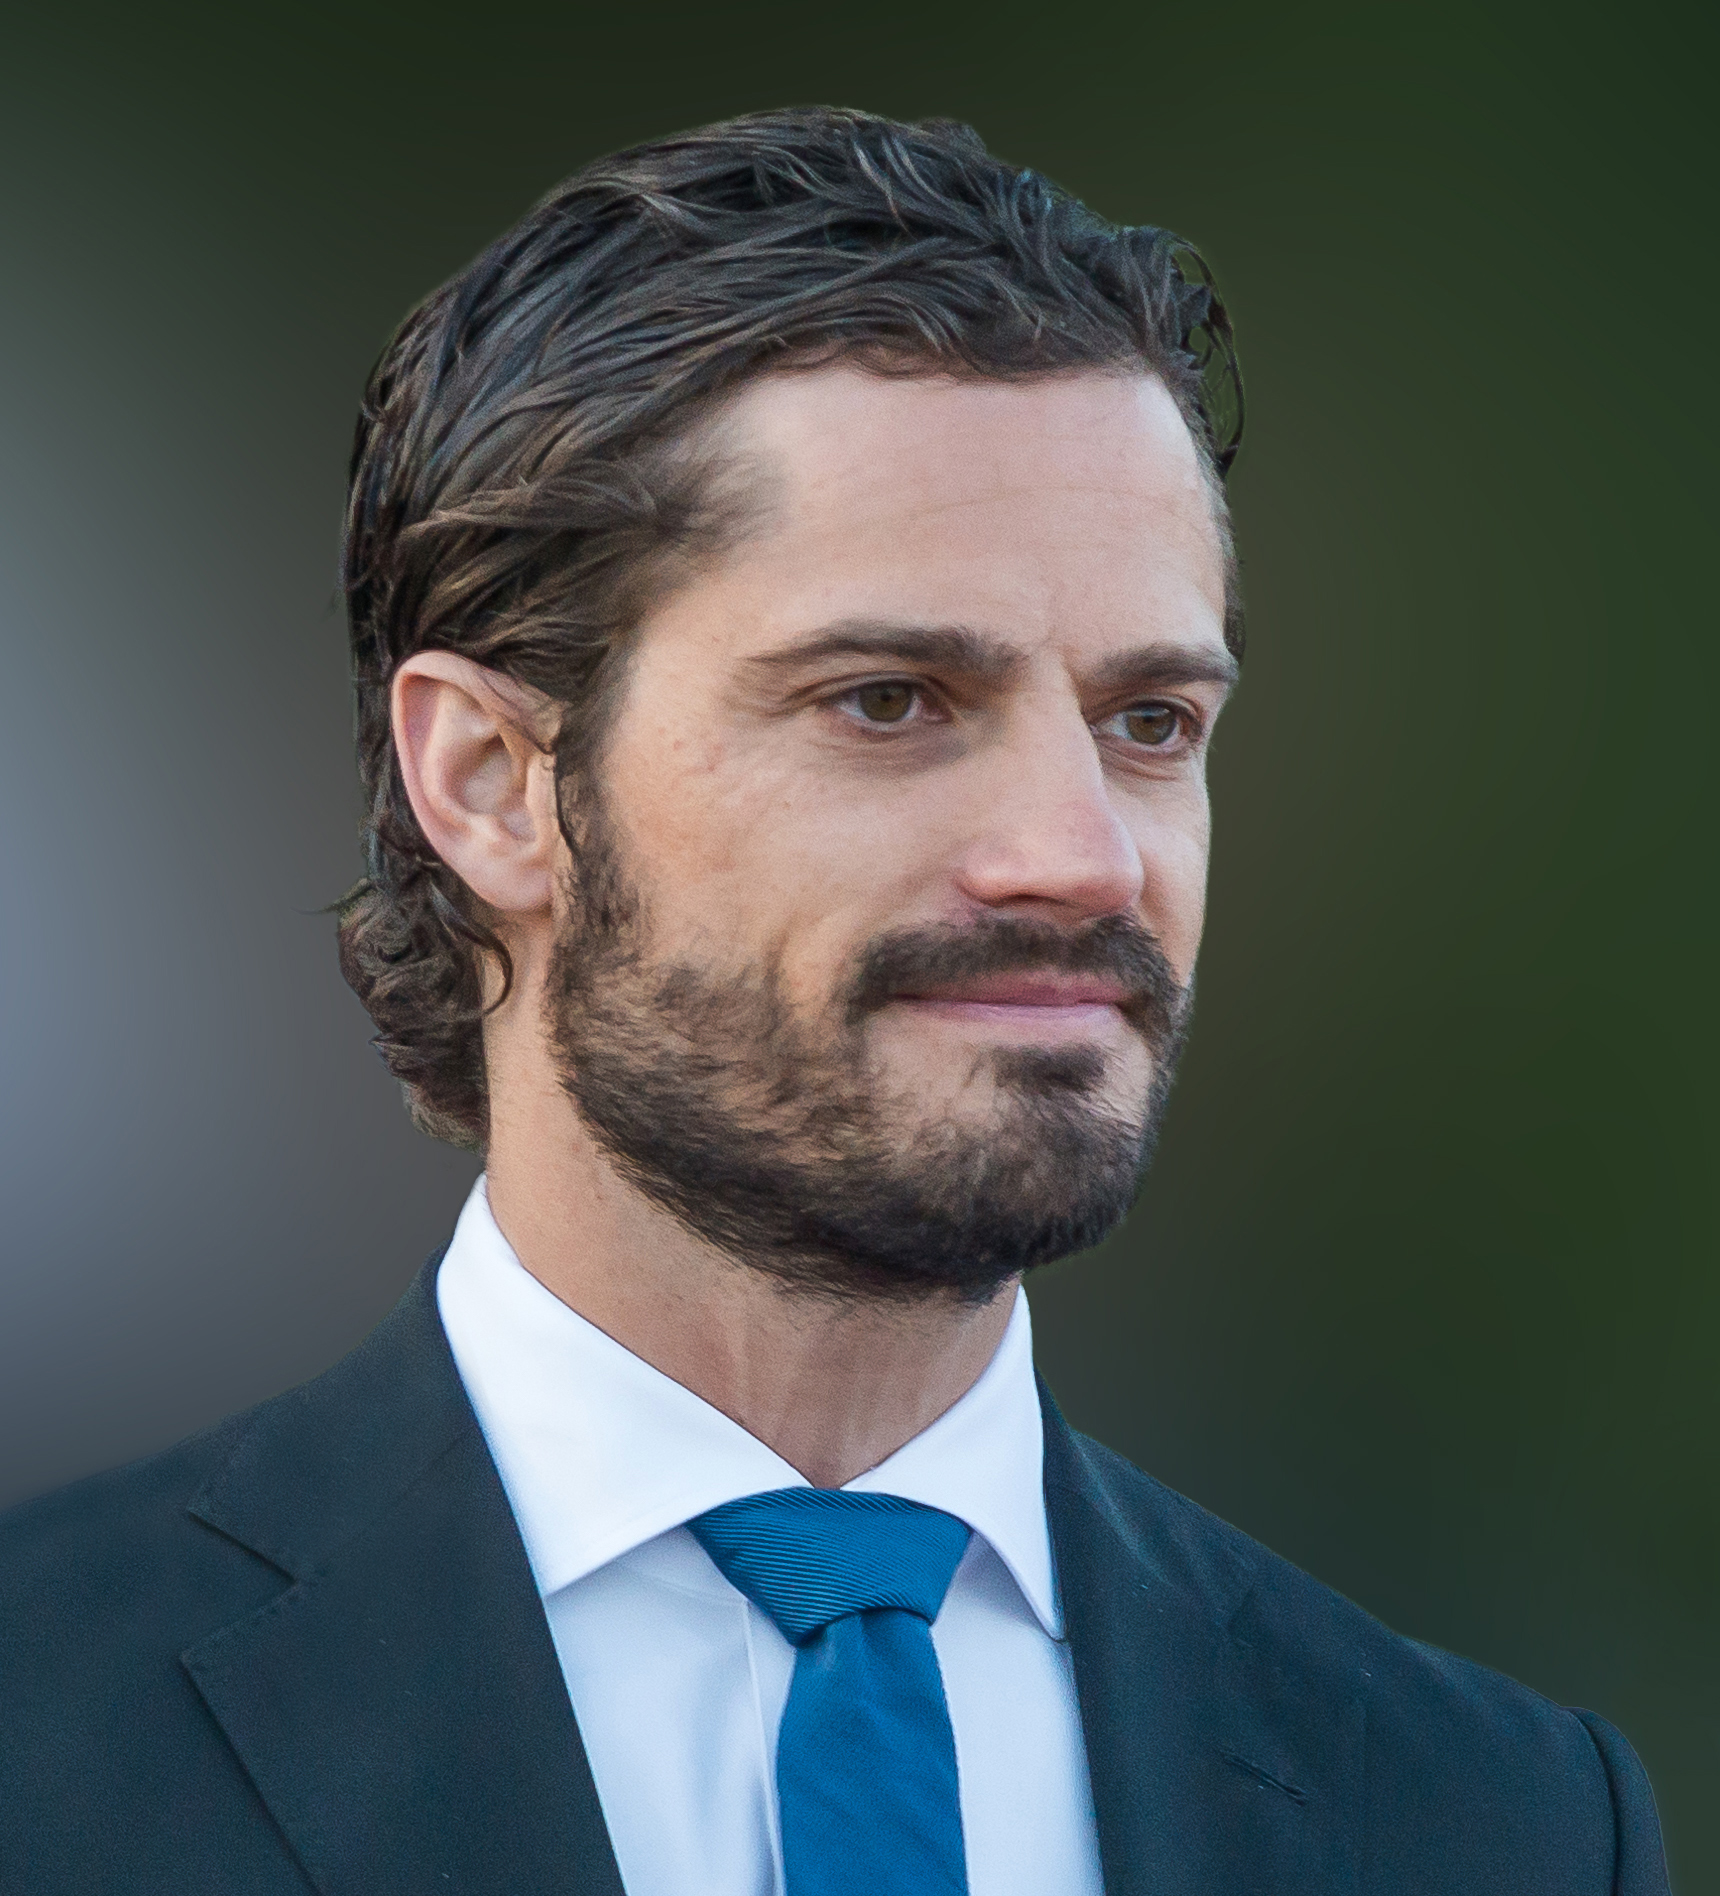 File:Prince Carl Philip of Sweden 8255.jpg - Wikimedia Commons